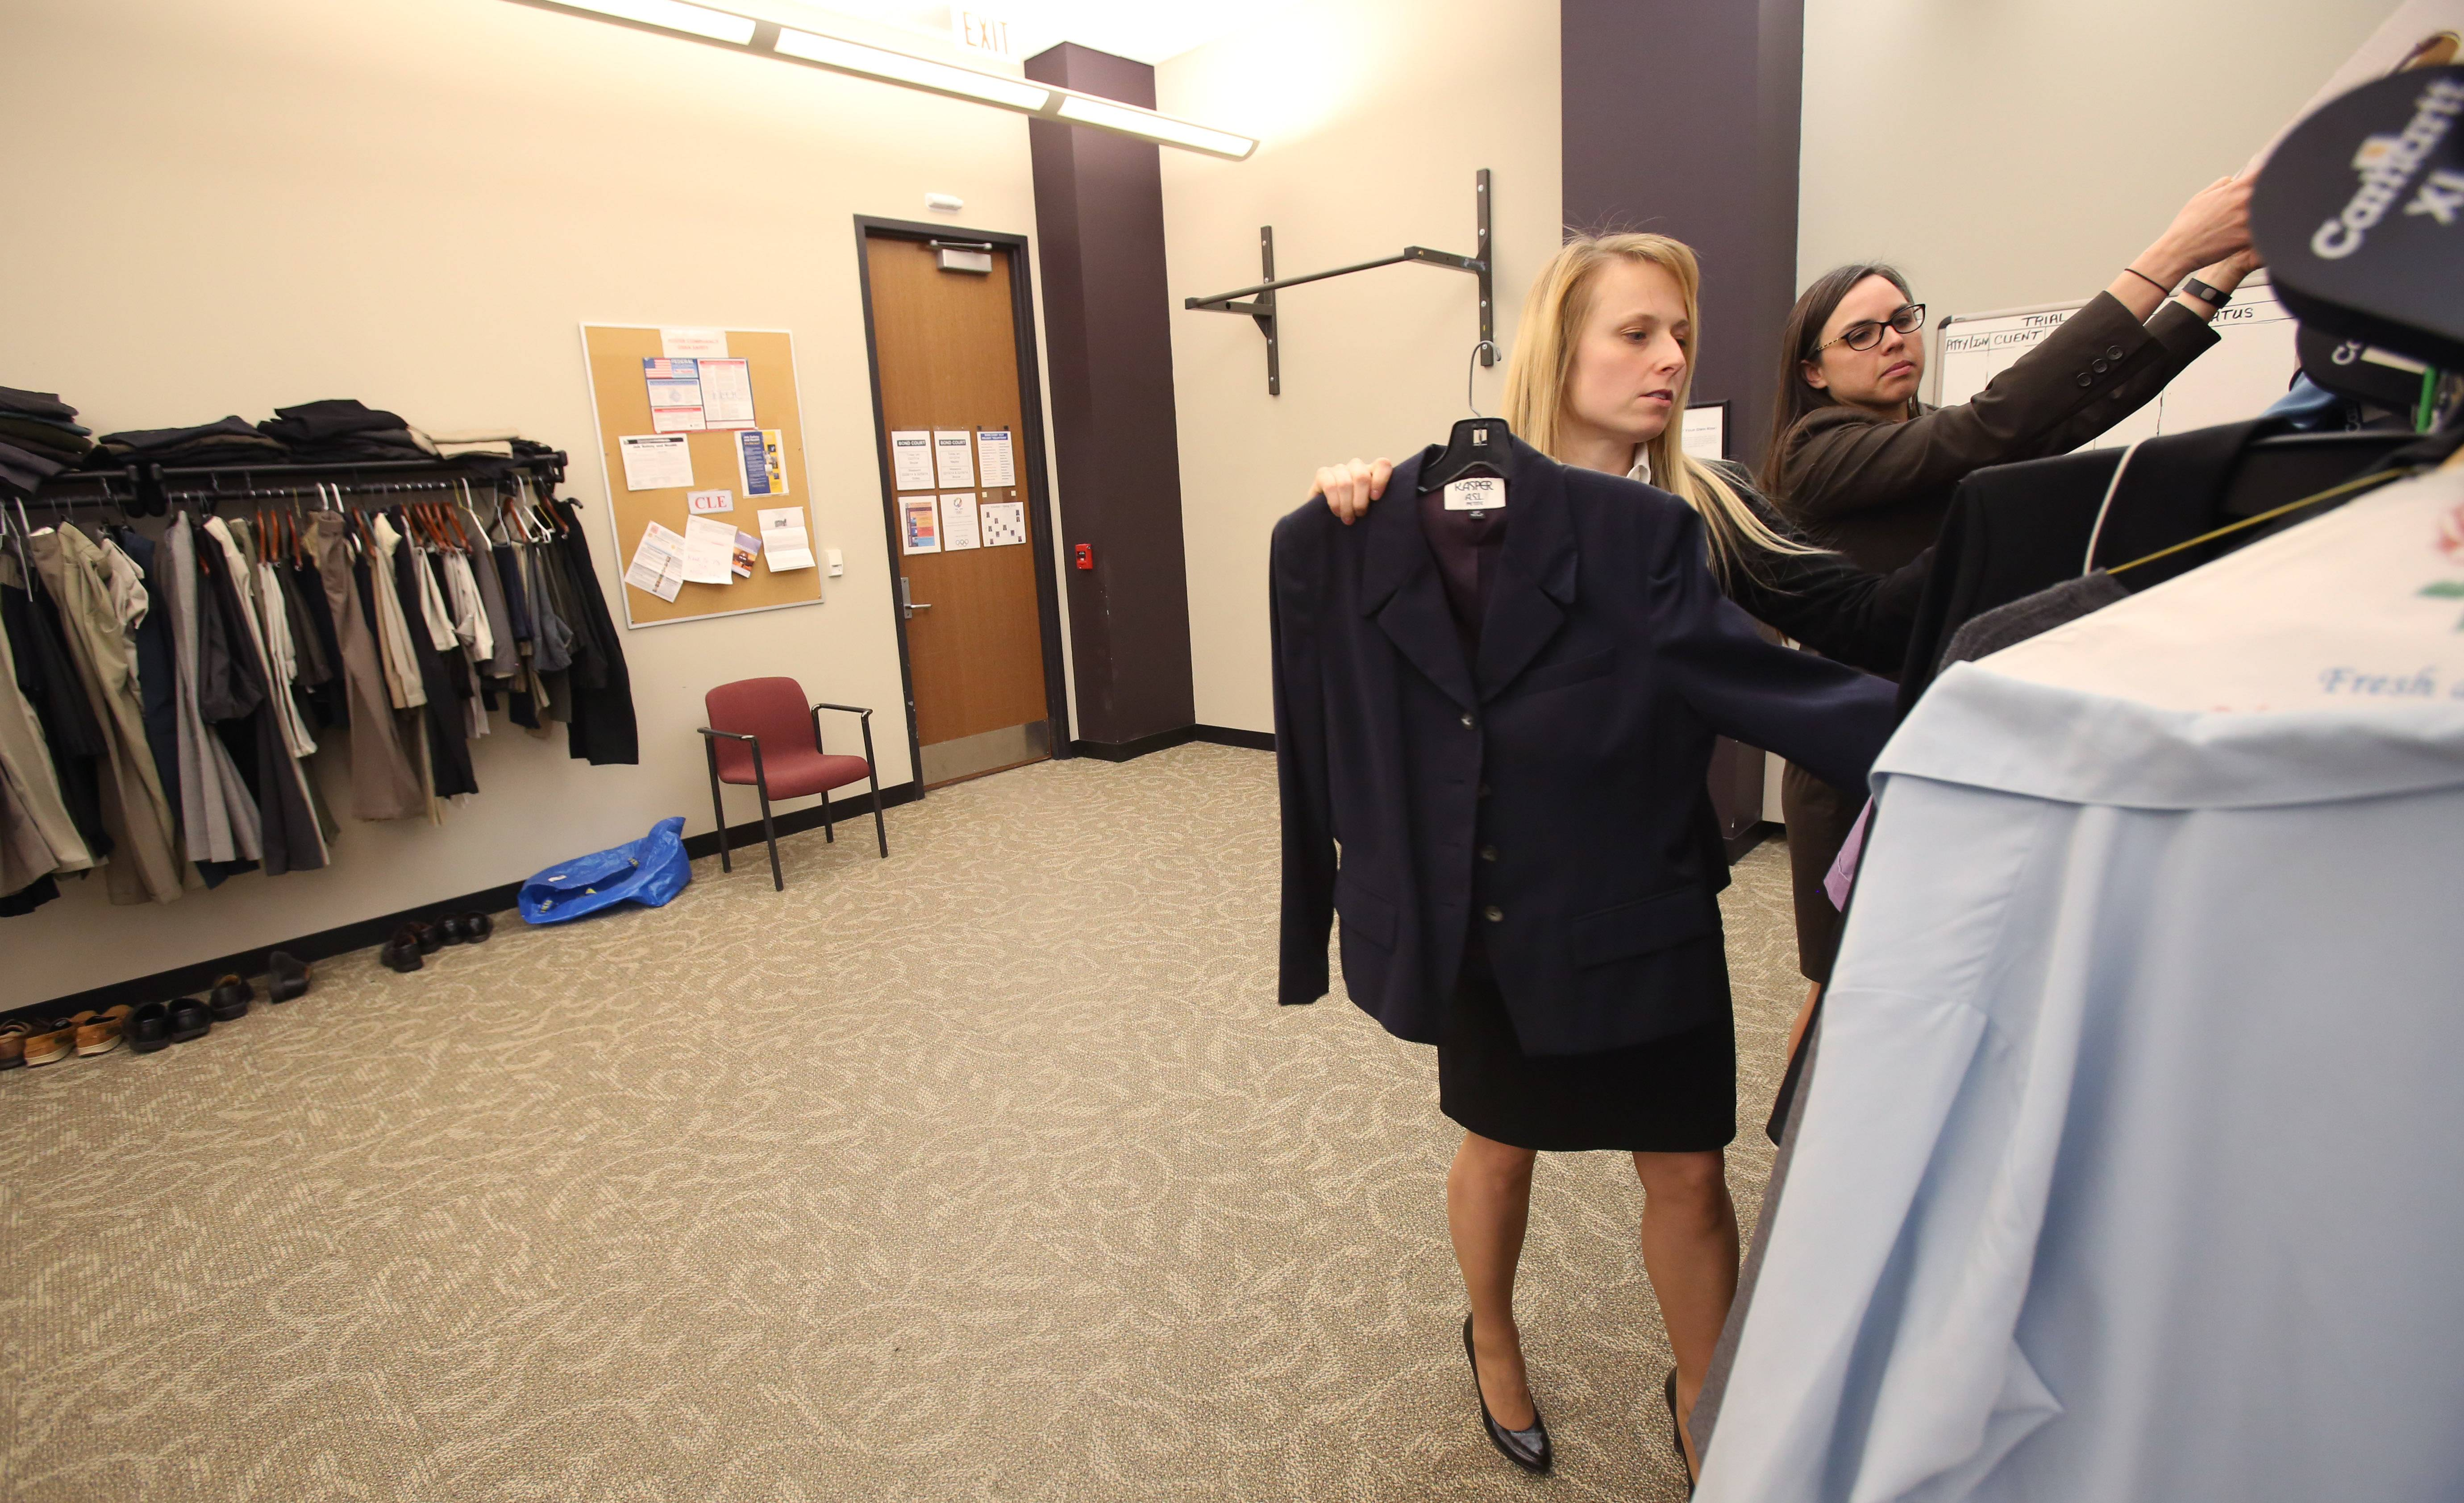 Kristen Nevdal, left and Jennifer Maples, senior assistant public defenders, sort through clothes available for a defendants at trial.